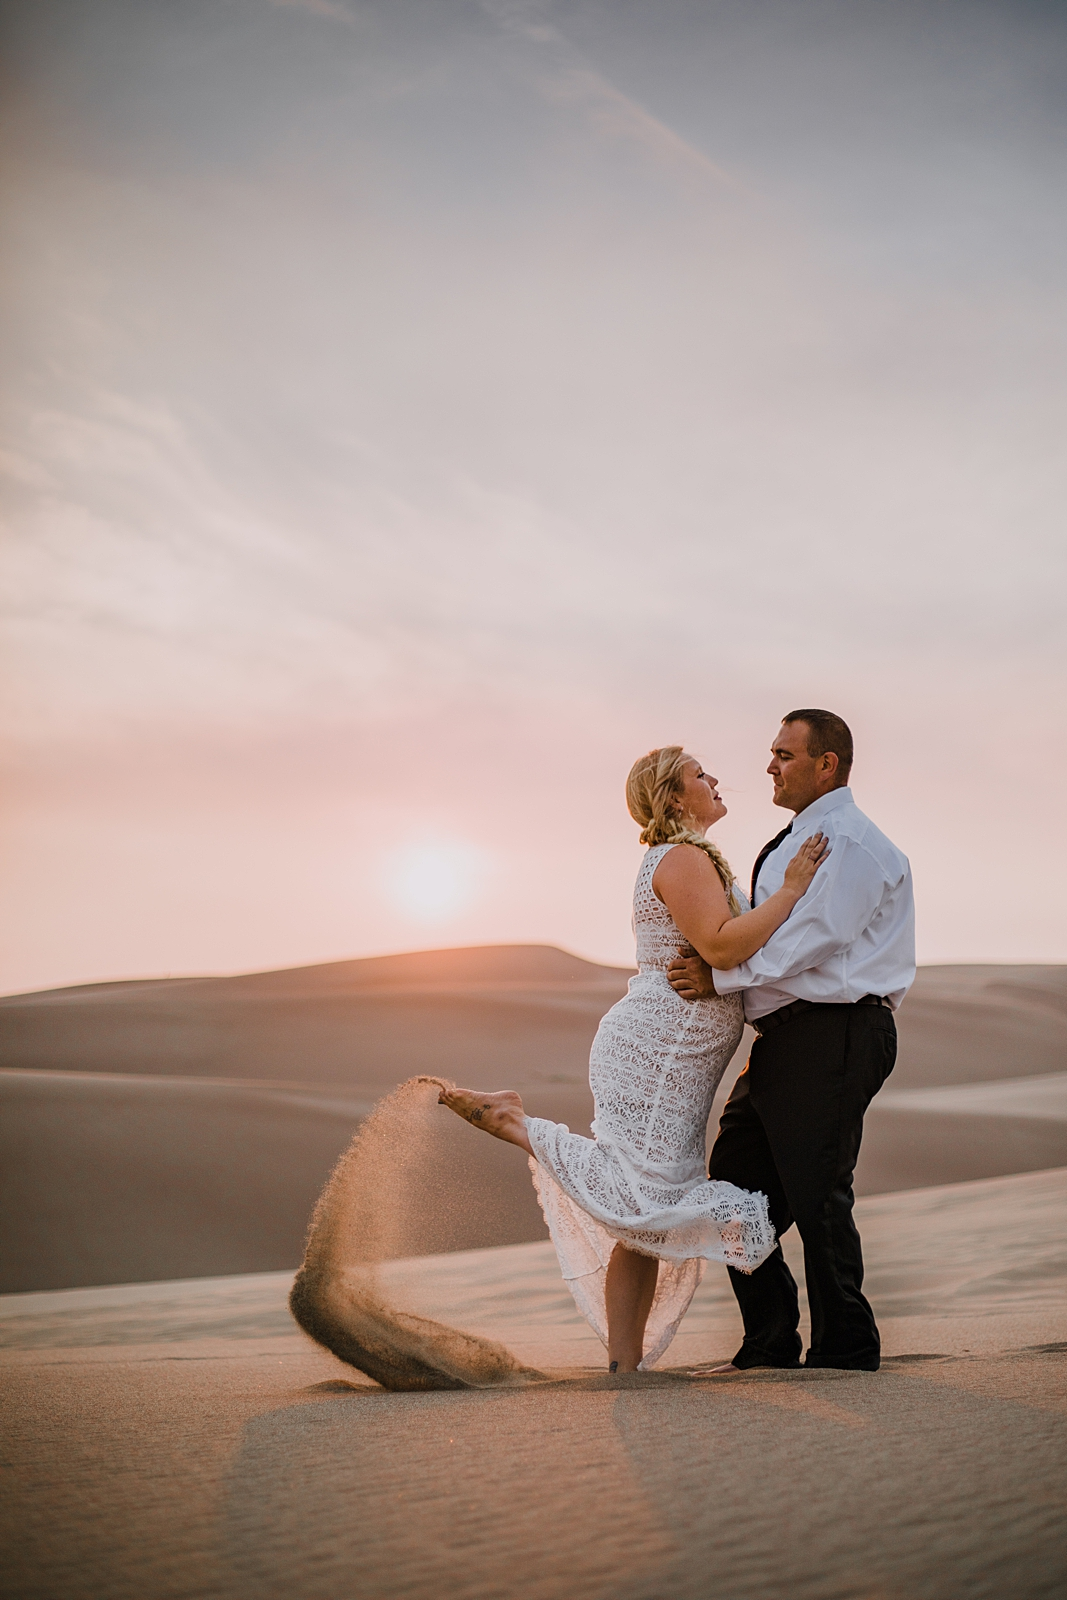 couple hiking the great sand dunes near crestone colorado, great sand dunes national park hiking, great sand dunes national park sunset elopement, elope at the great sand dunes